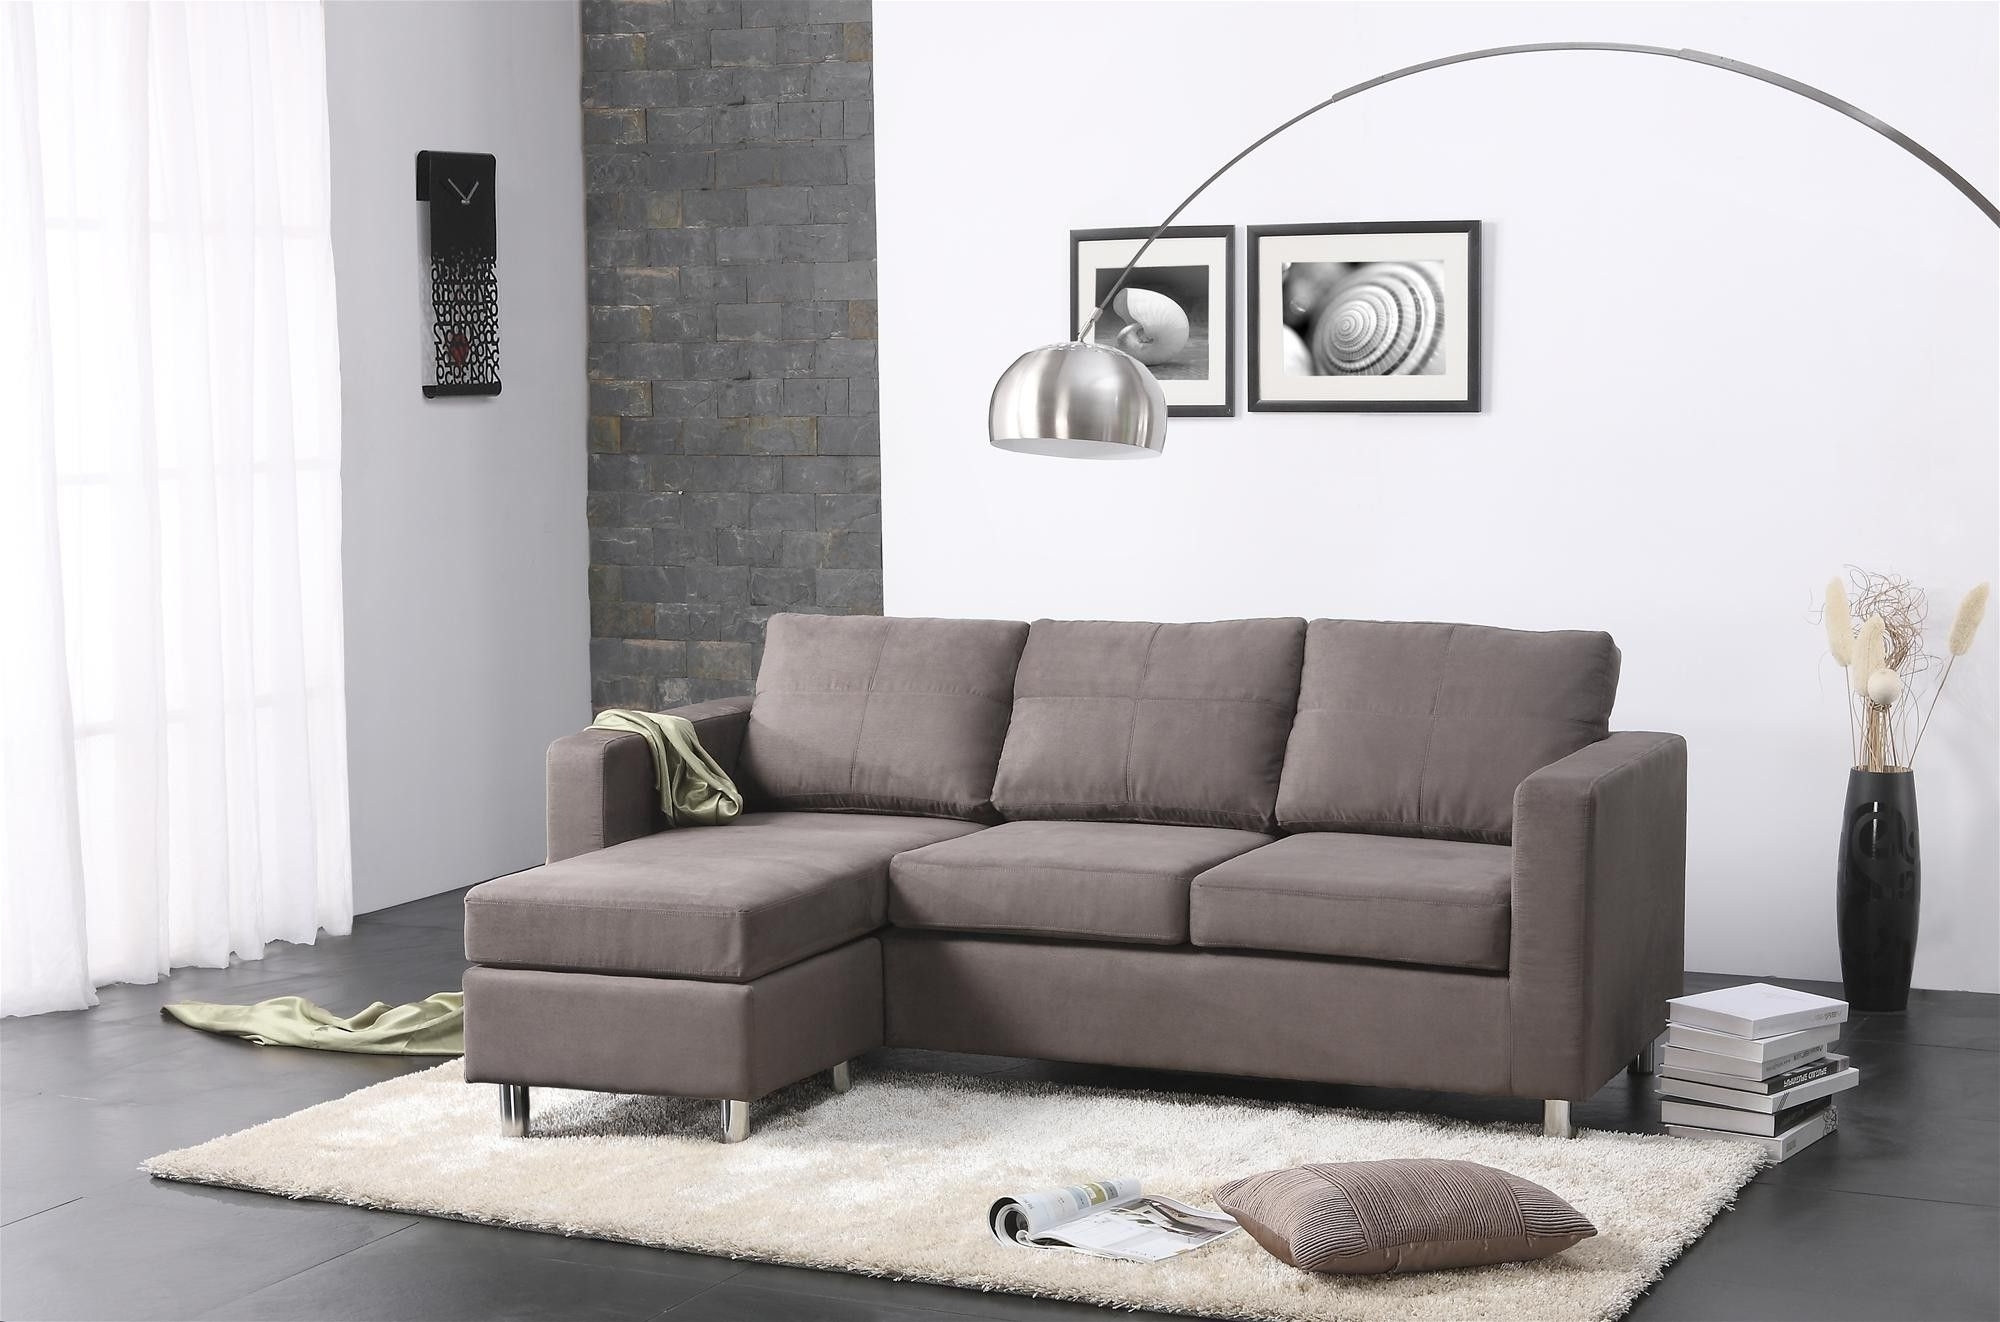 Best And Newest Canada Sectional Sofas For Small Spaces Throughout Amazing Modern Small Spaces Living Room Decors With Grey Sectional (View 13 of 15)